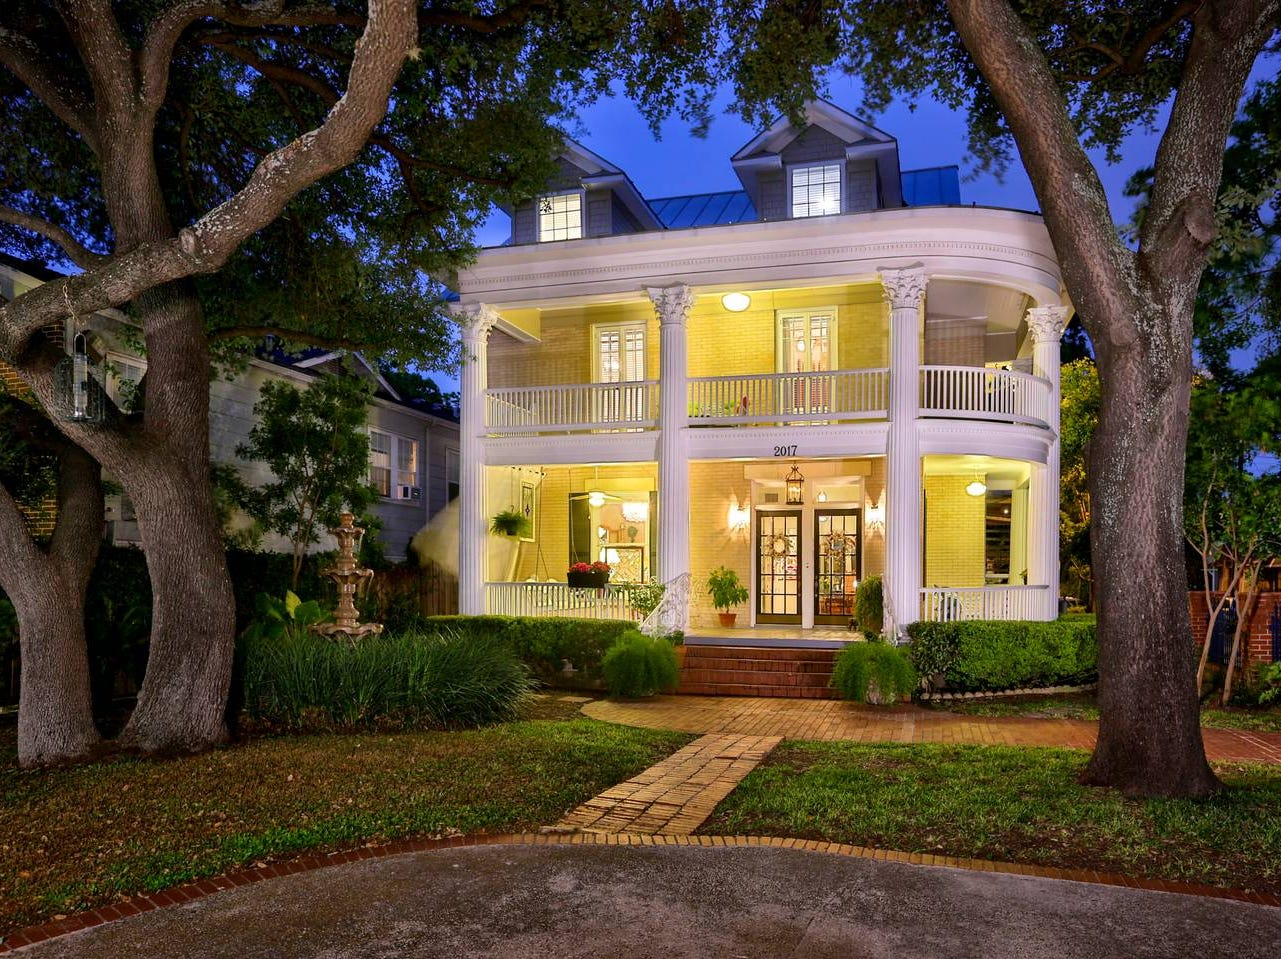 This historic three-story mansion, built in 1910, is located nearby a lush park in San Antonio, Texas. It is only a two-mile drive from the Riverwalk and the Alamo.